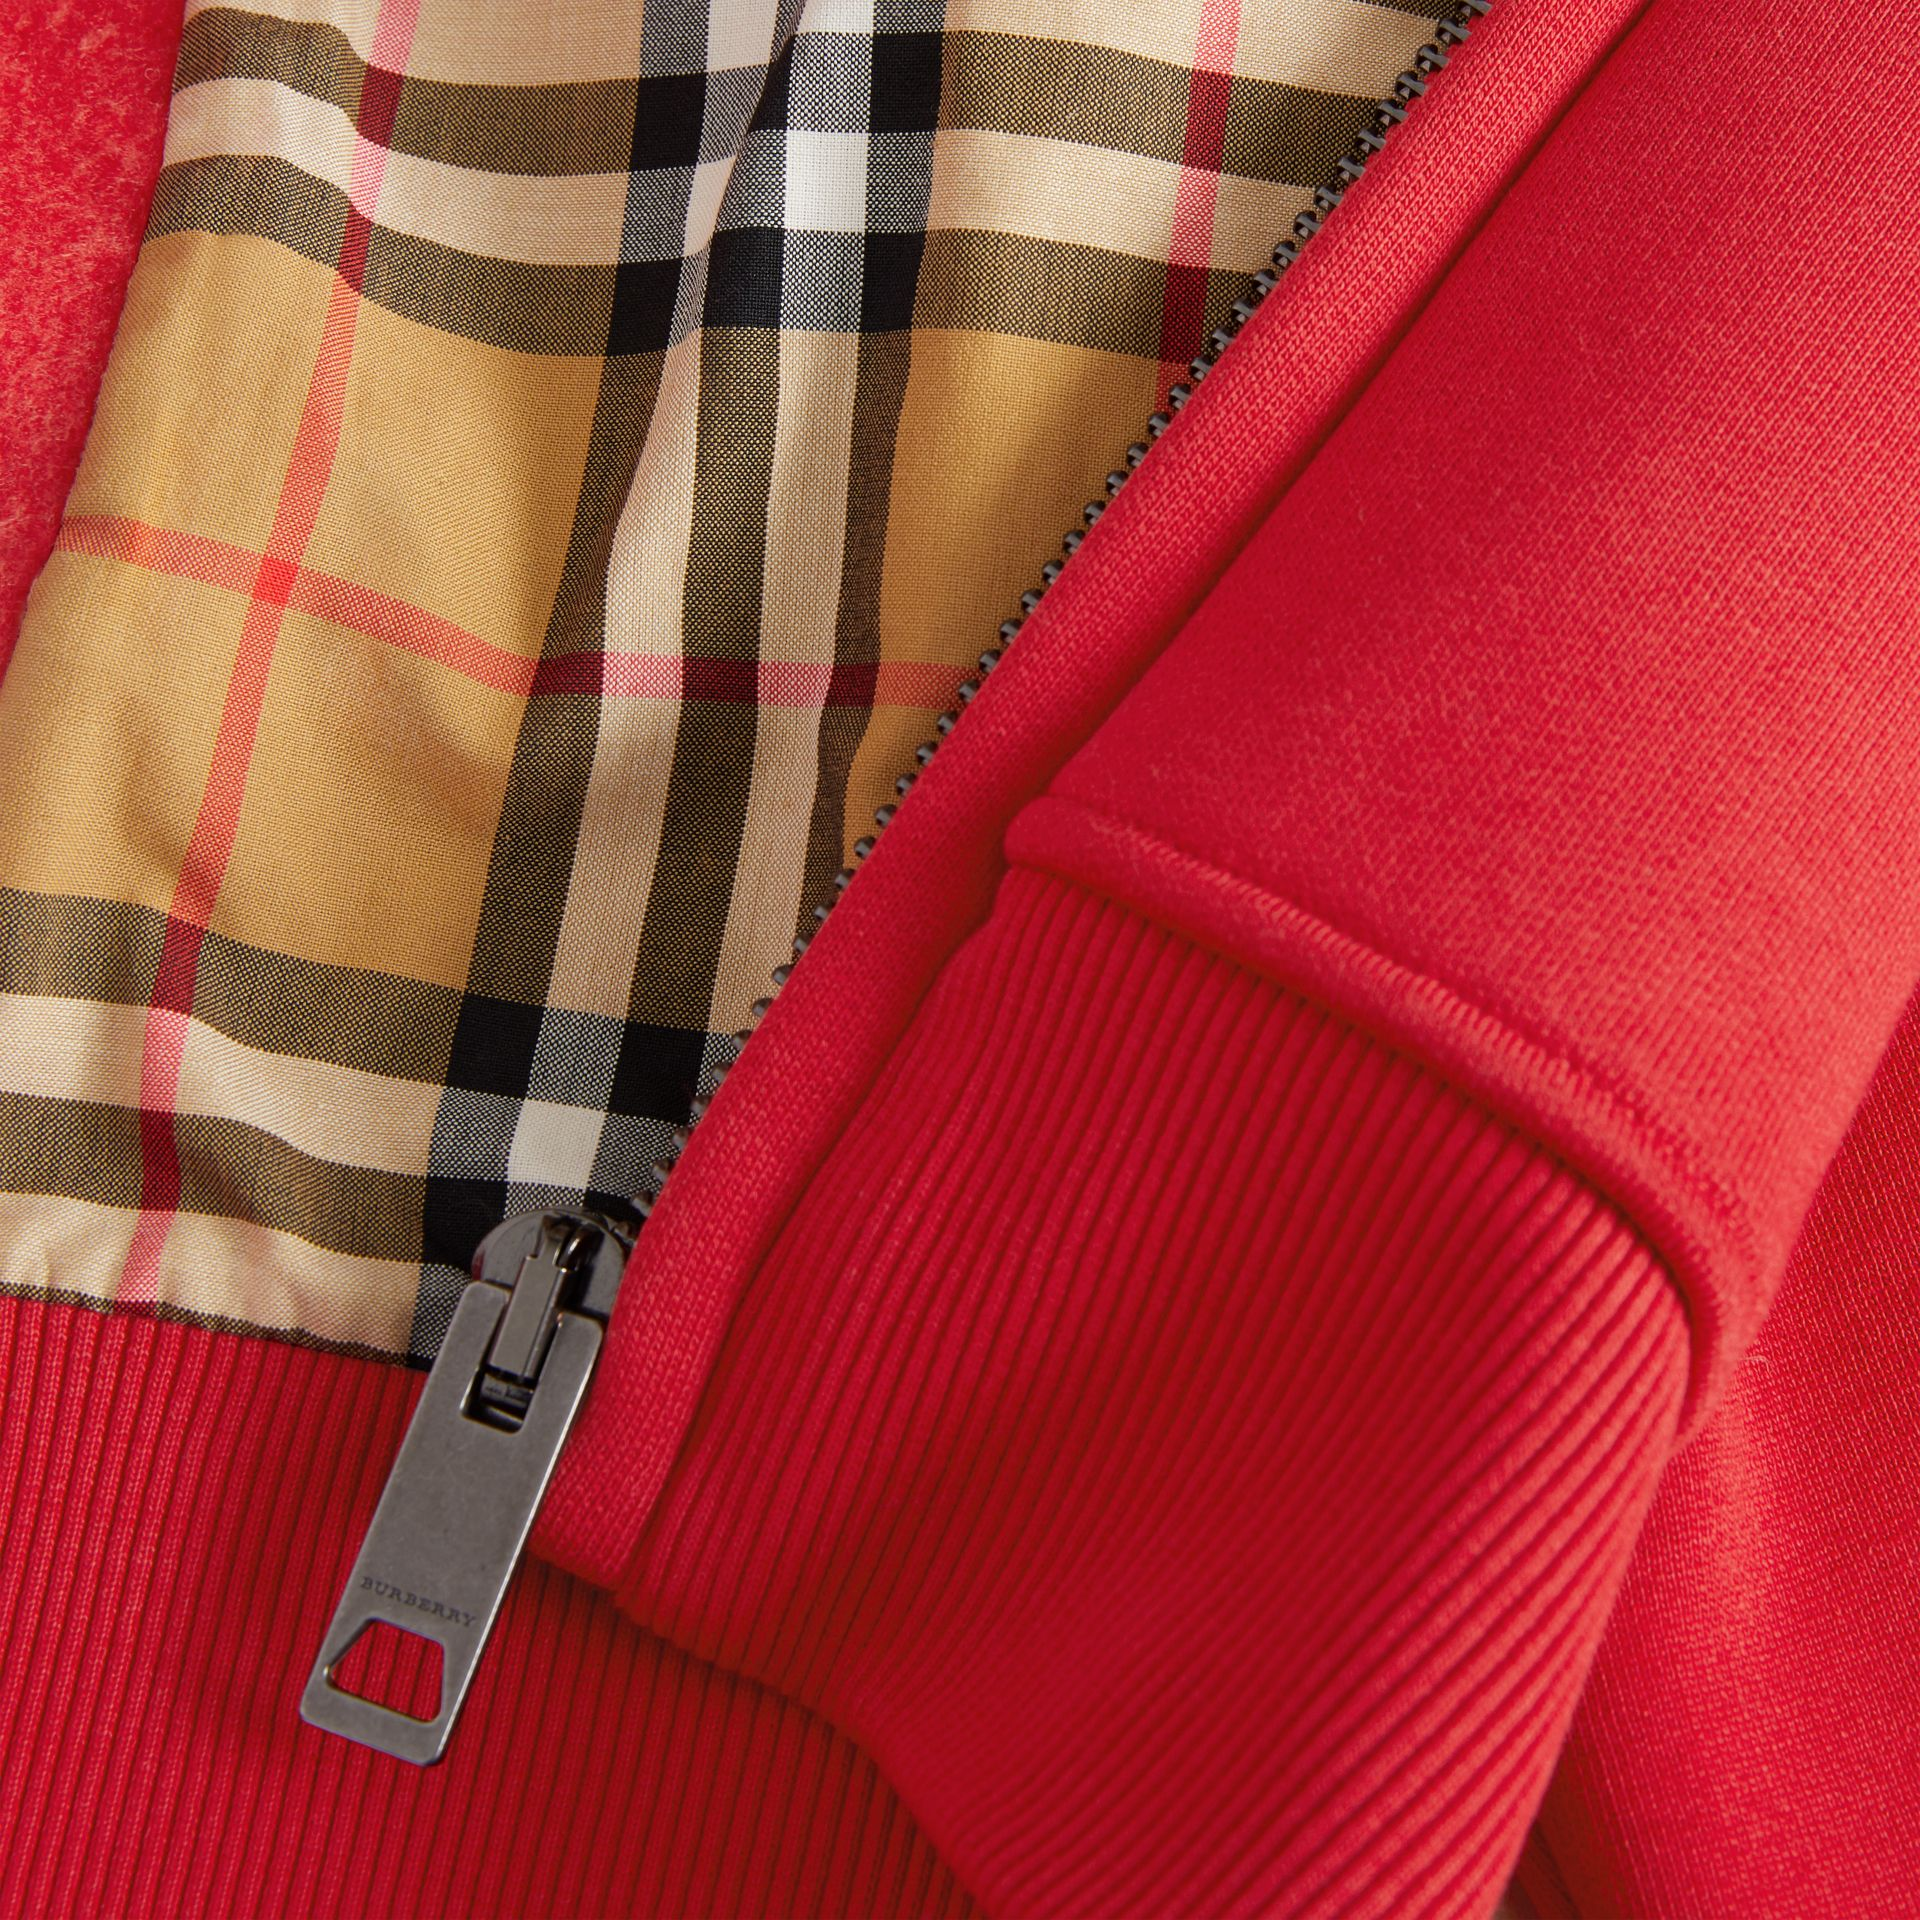 Vintage Check Detail Jersey Hooded Top in Cadmium Red - Women | Burberry United Kingdom - gallery image 5